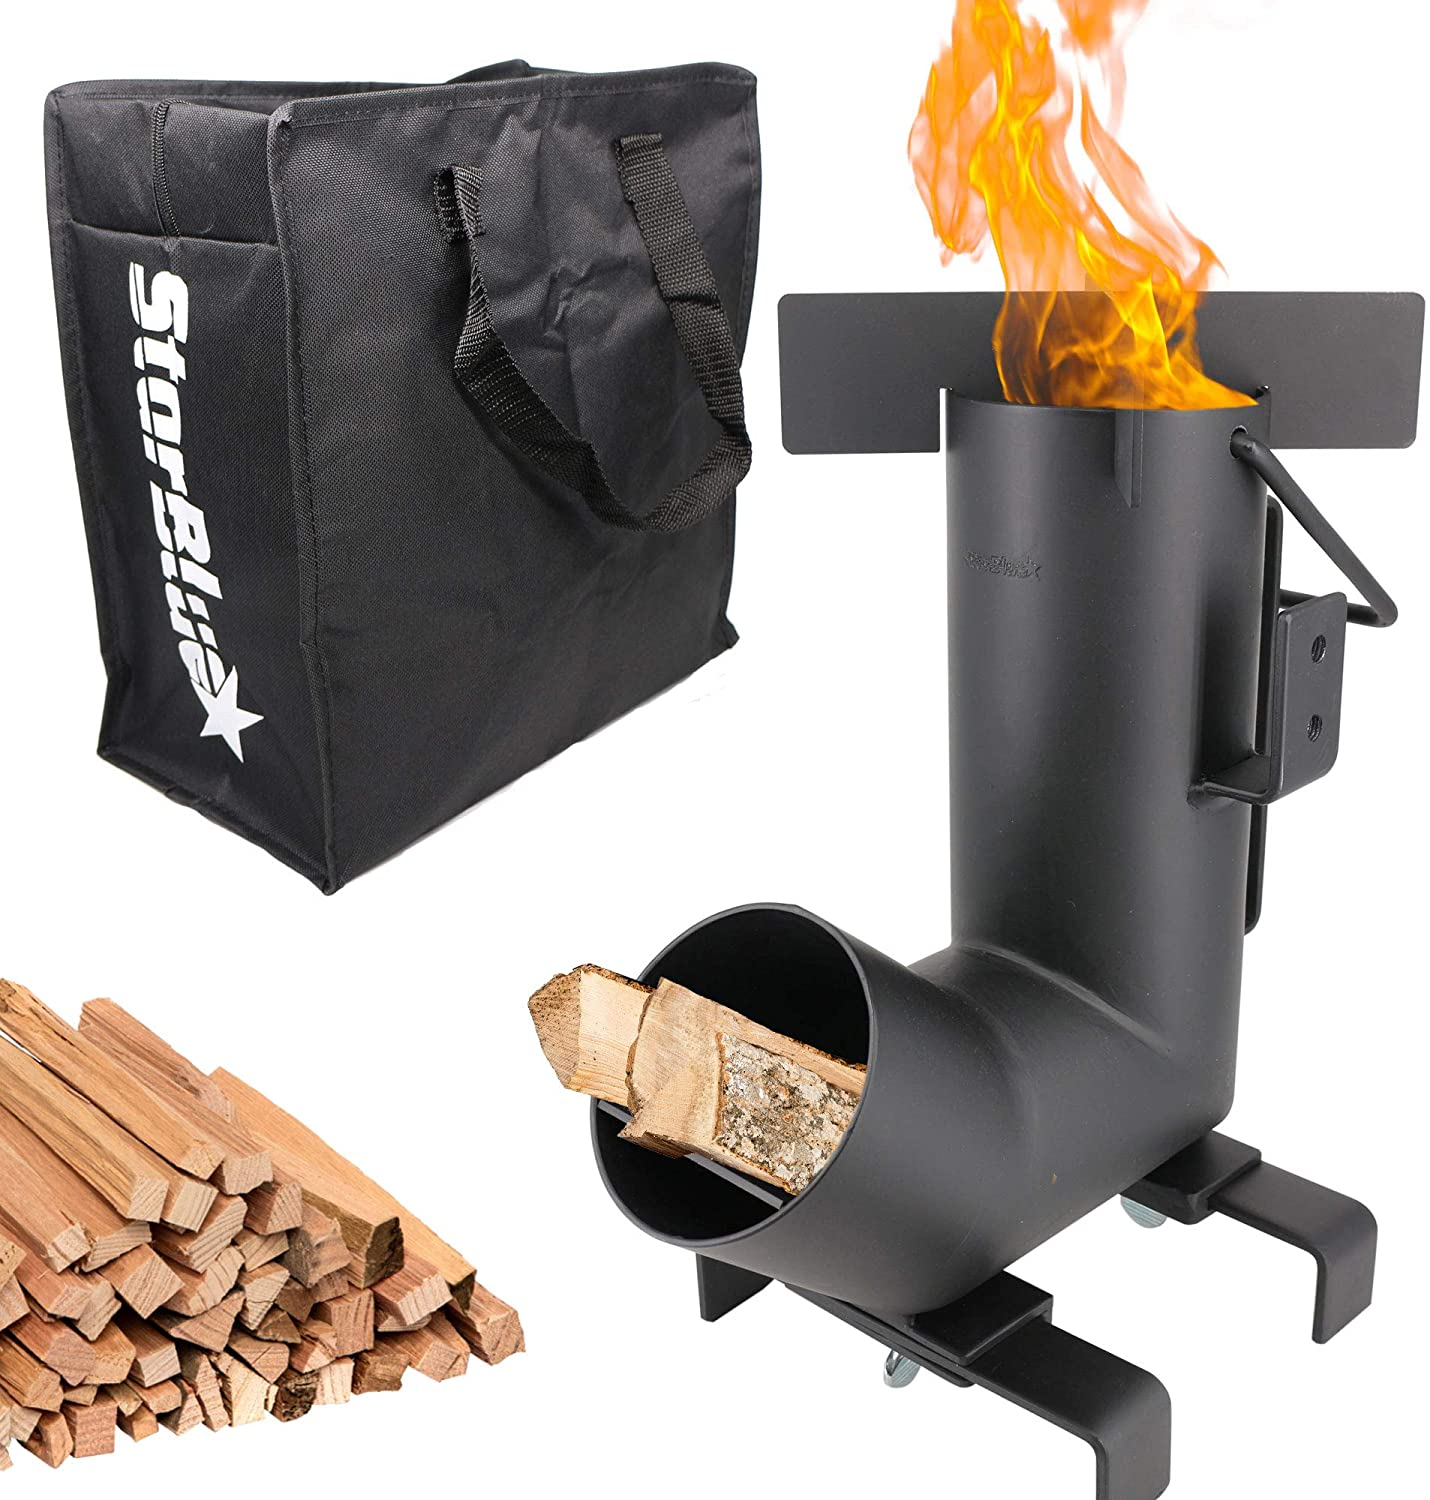 StarBlue Camping Rocket Stove with Free Carrying Bag - A Portable Wood Burning Camping Stove with Large Fuel Chamber Best for Outdoor Cooking, Camping, Picnic, BBQ, Hunting, Fishing